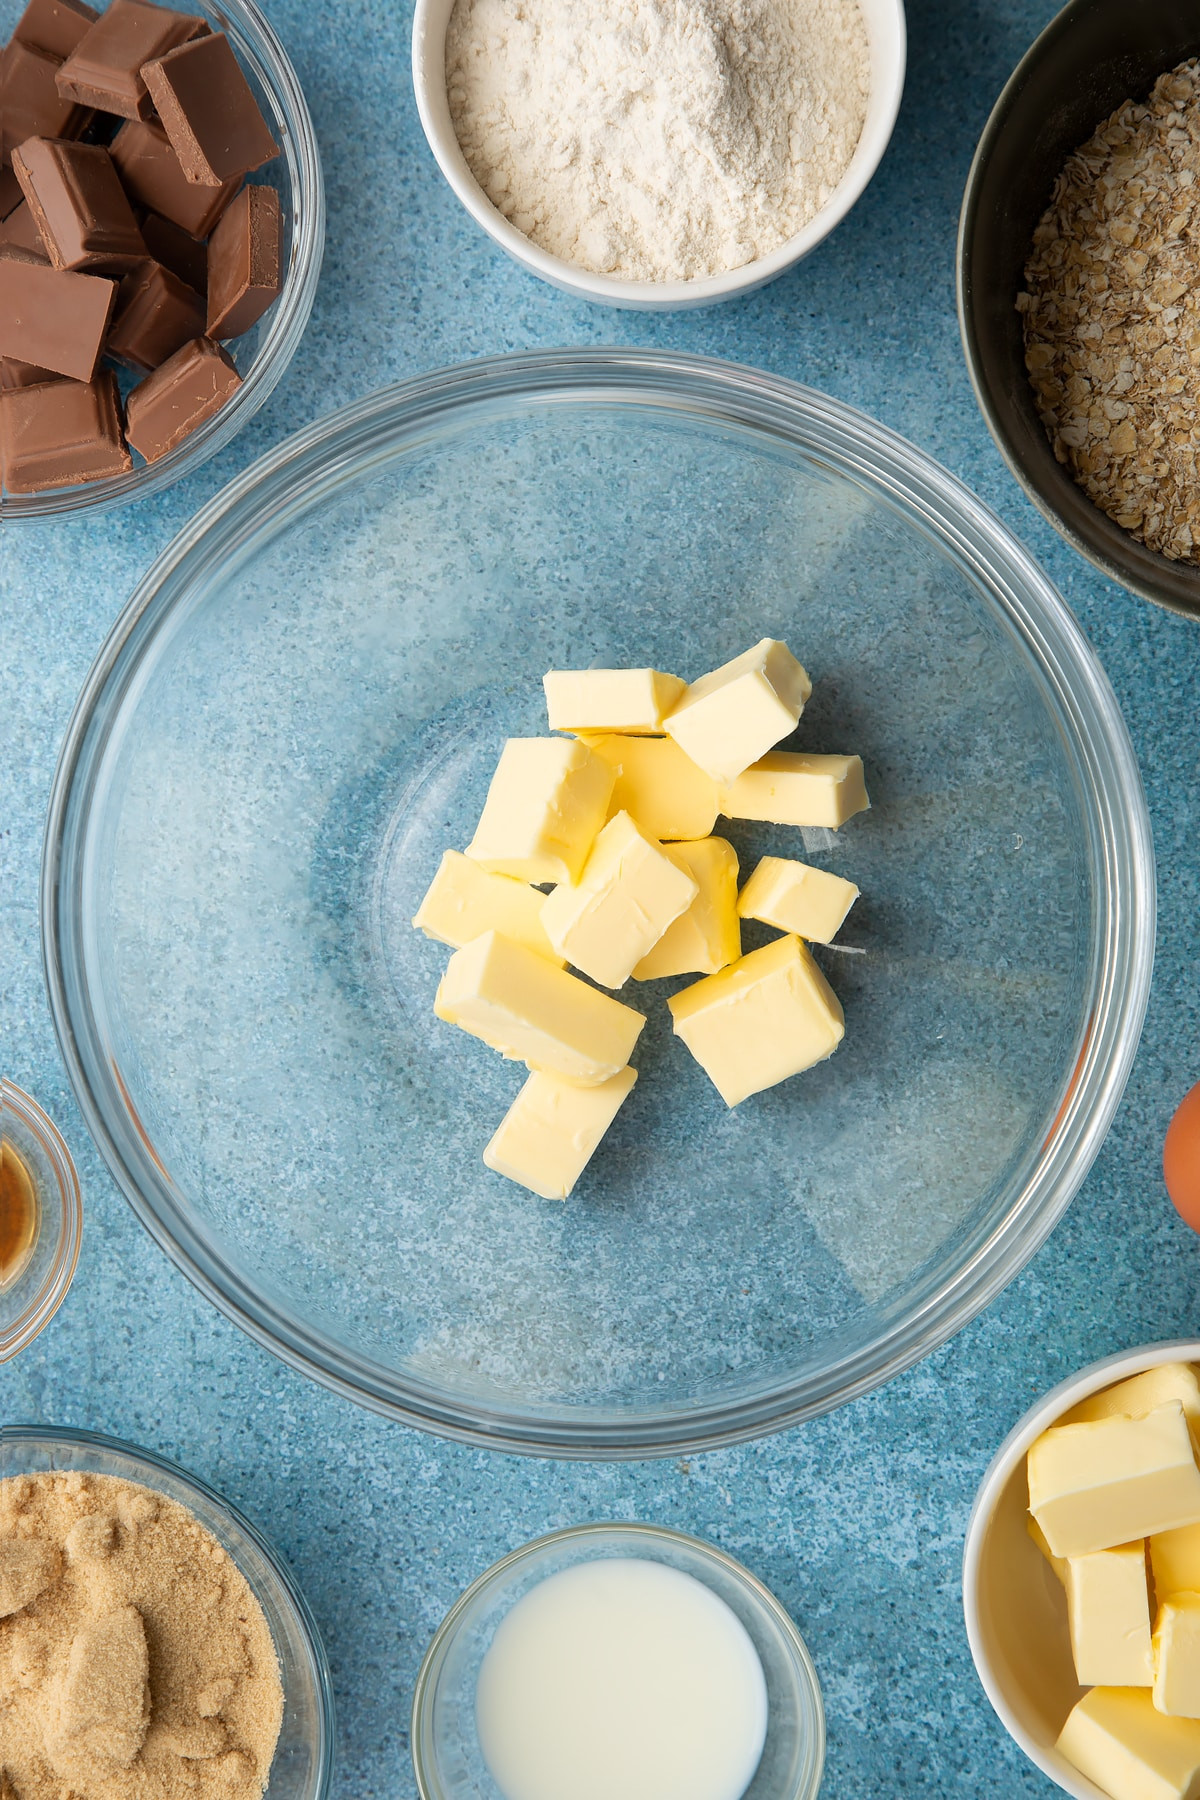 Cubed butter in a glass mixing bowl. Ingredients to make cookie monster cookies surround the bowl.